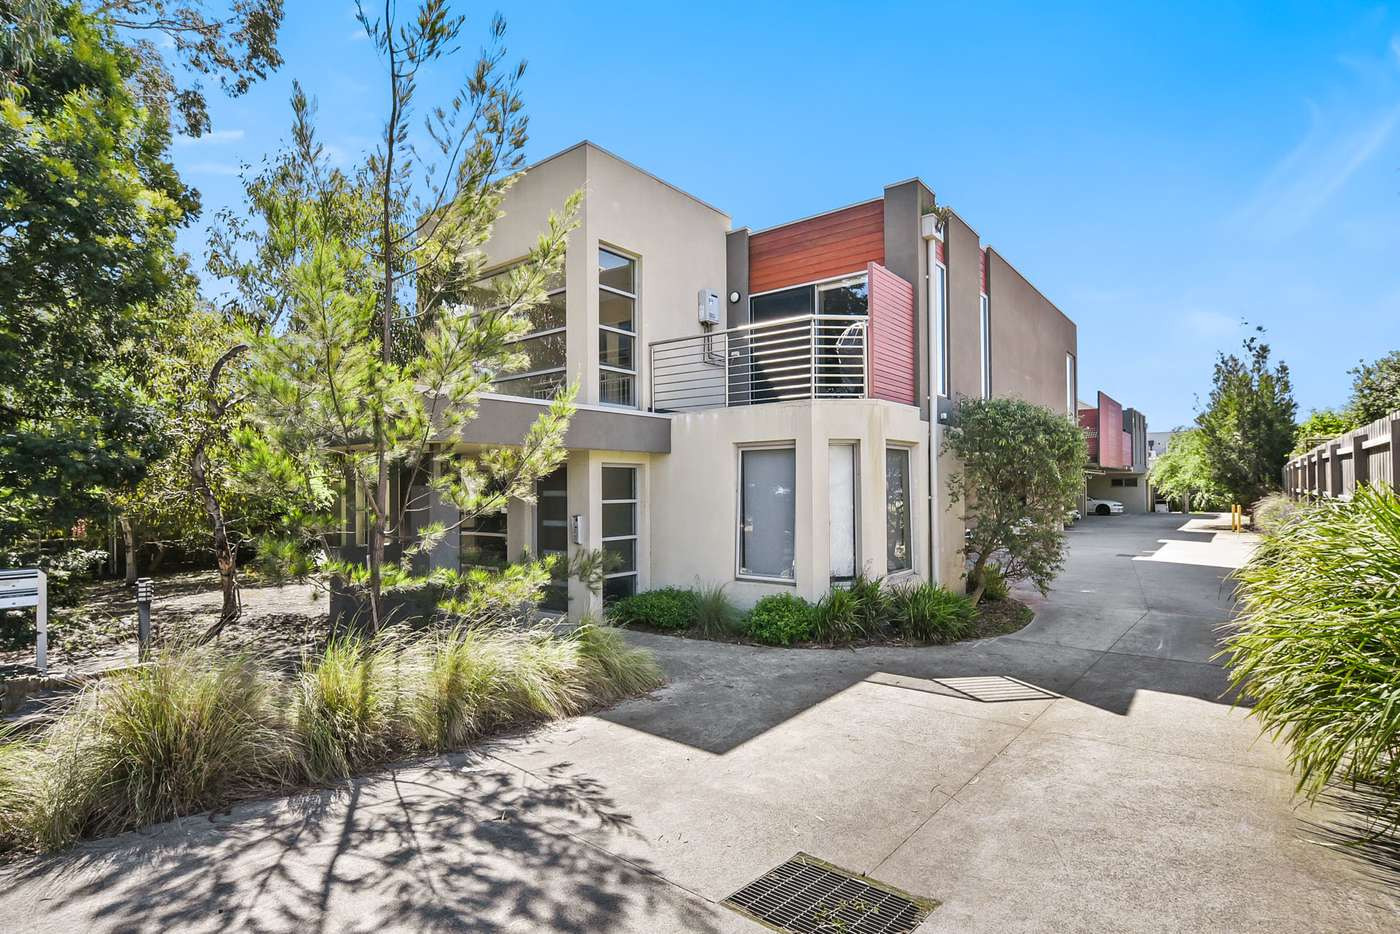 Main view of Homely apartment listing, 11/27 Police Road, Mulgrave VIC 3170